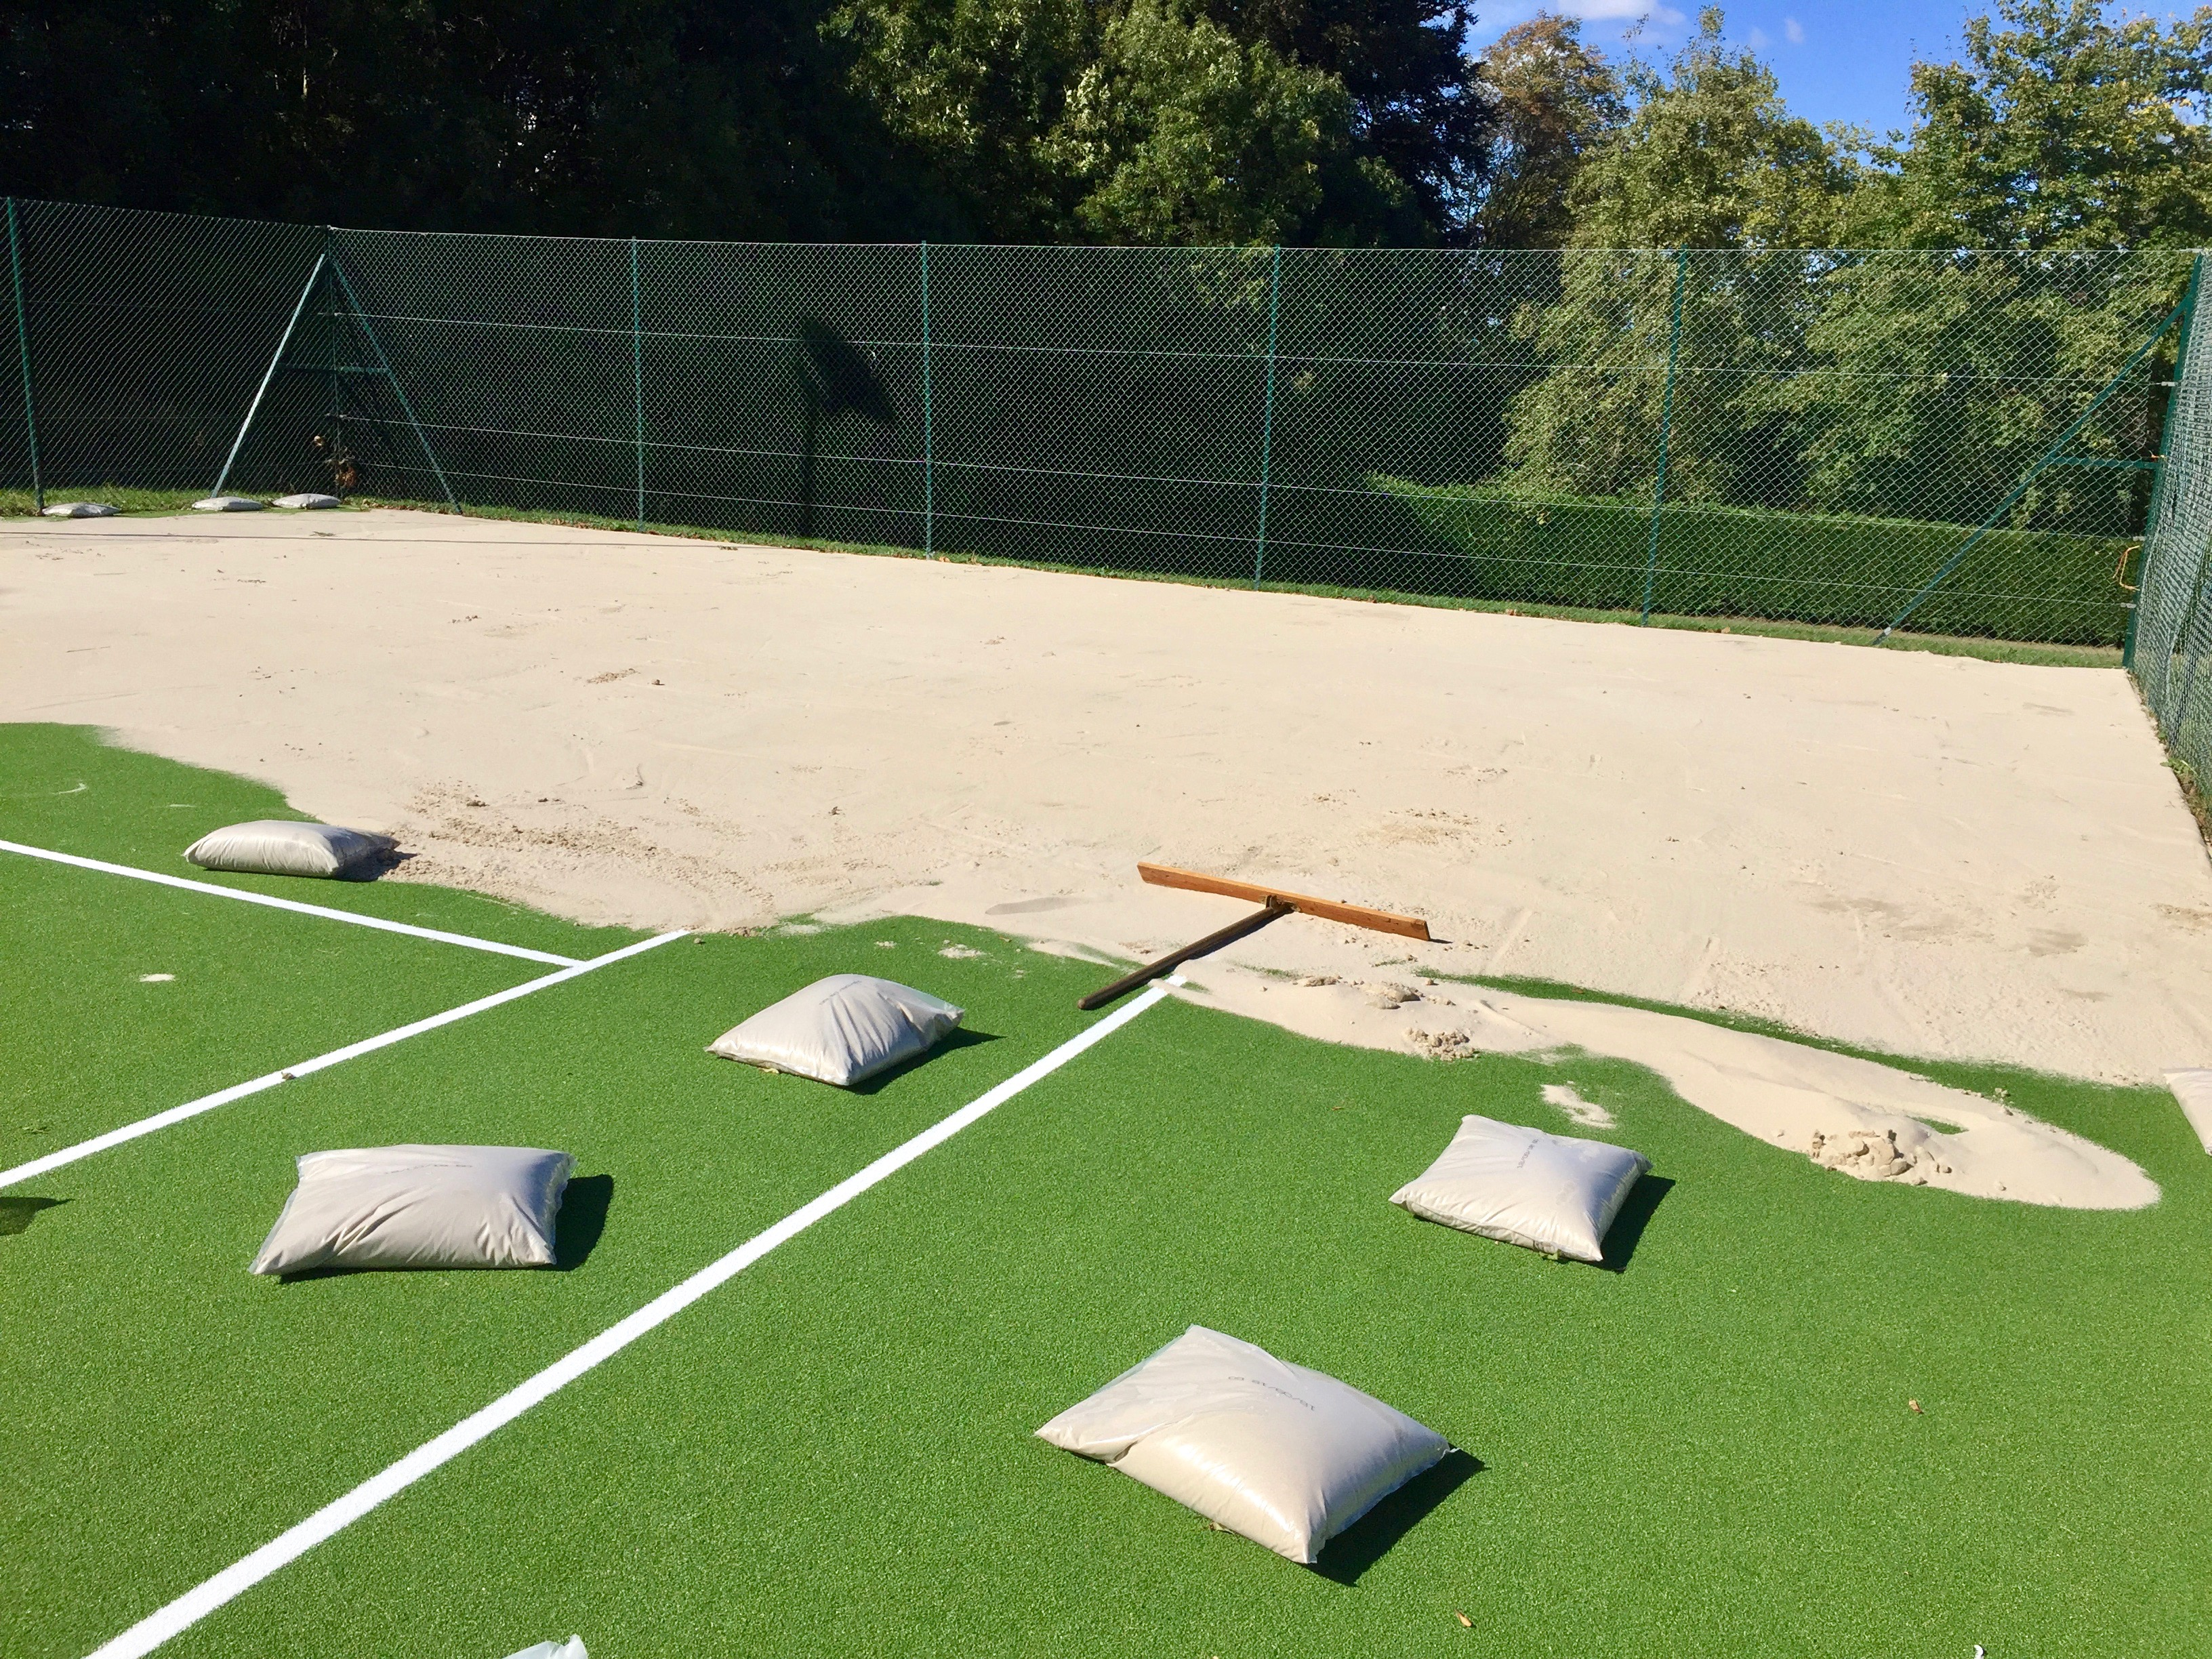 Progress with the new tennis surfaces in Muswell Hill